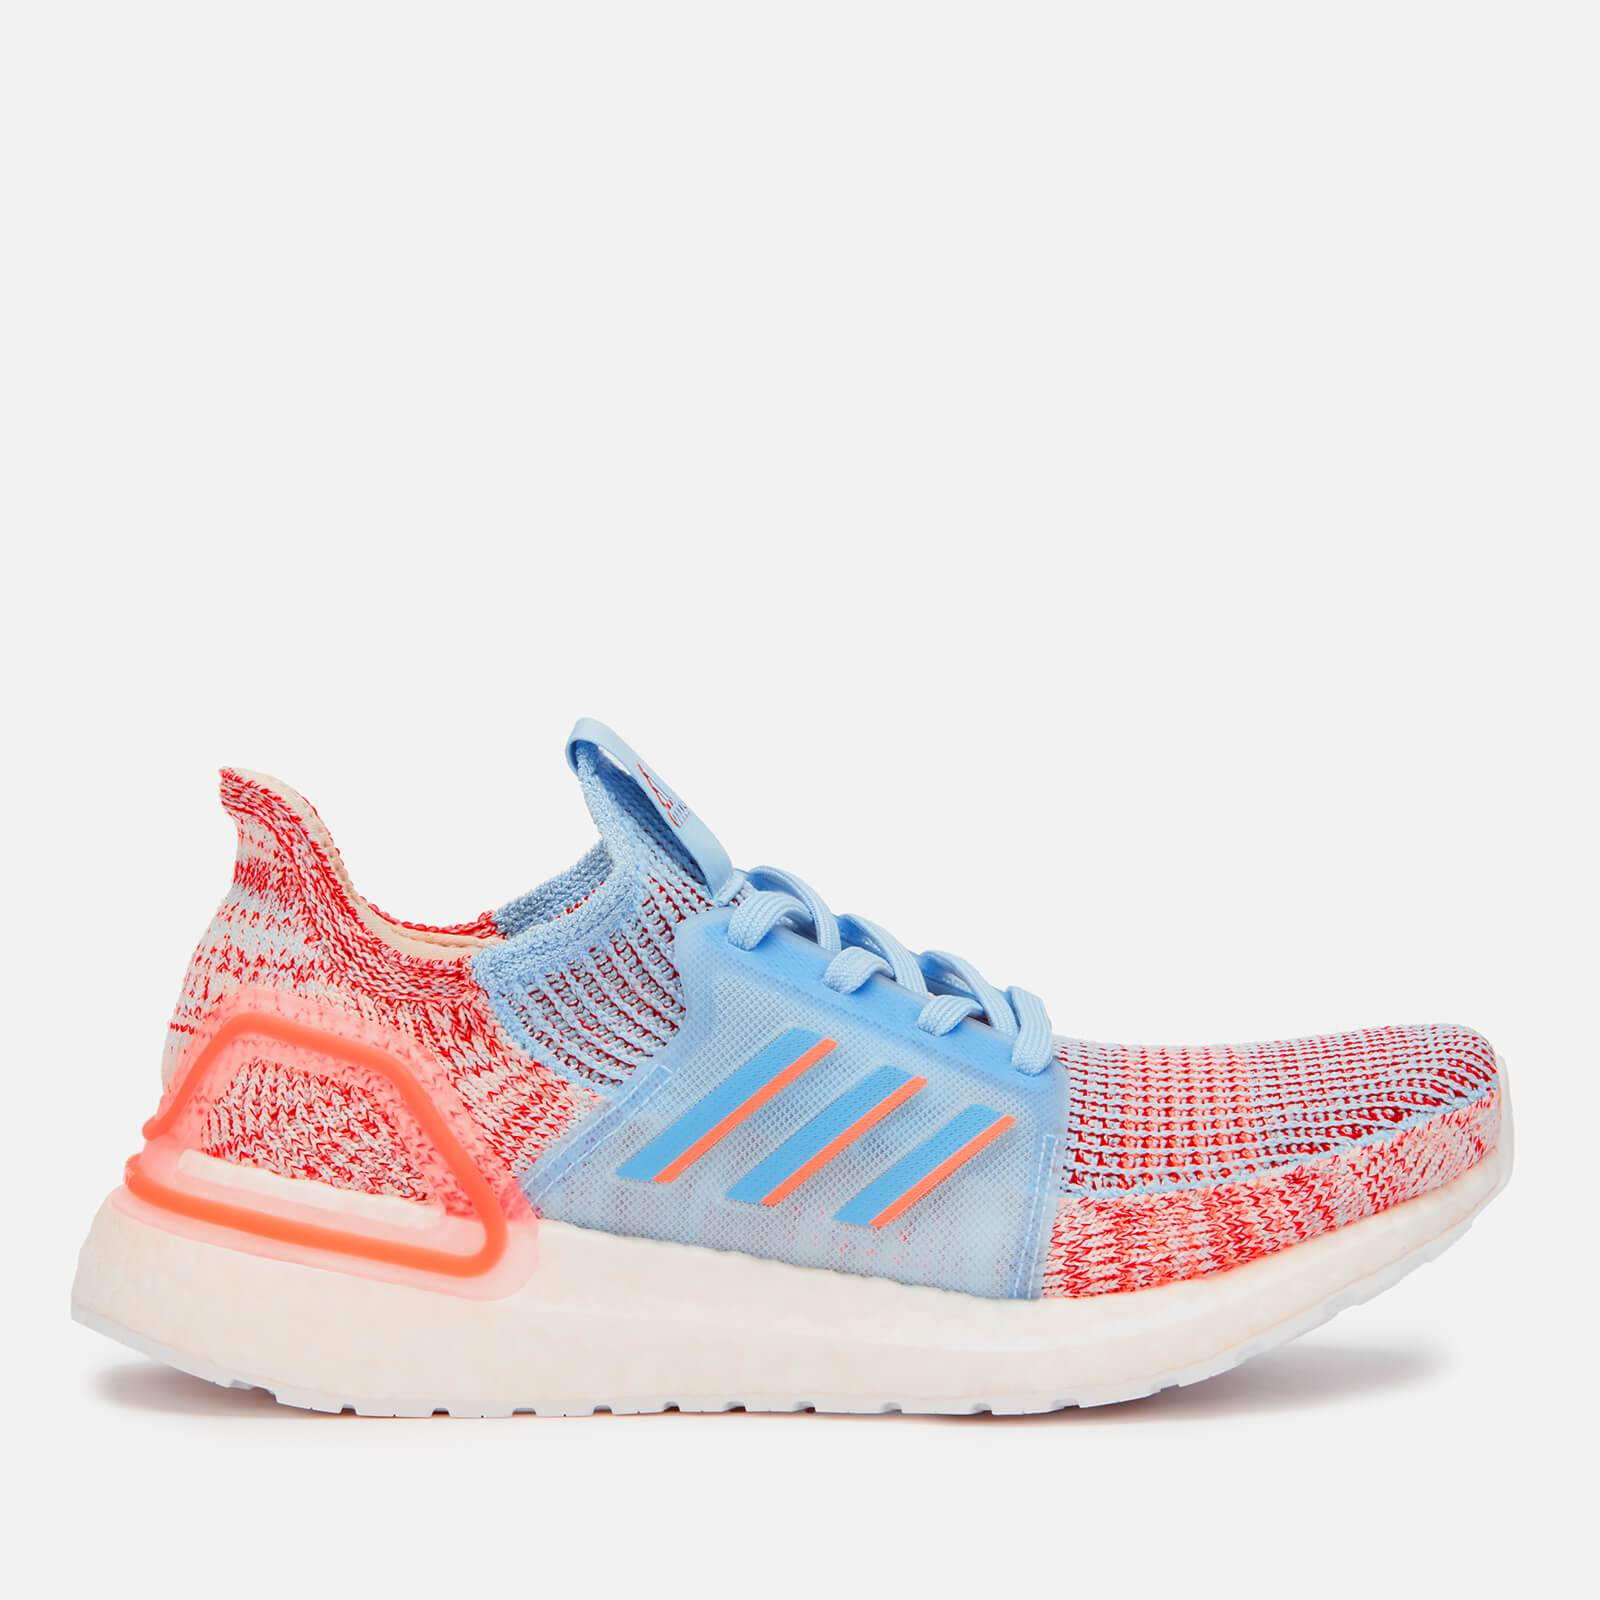 adidas Women's Ultraboost 19 Trainers - Blue/Orange - UK 3.5 - Multi